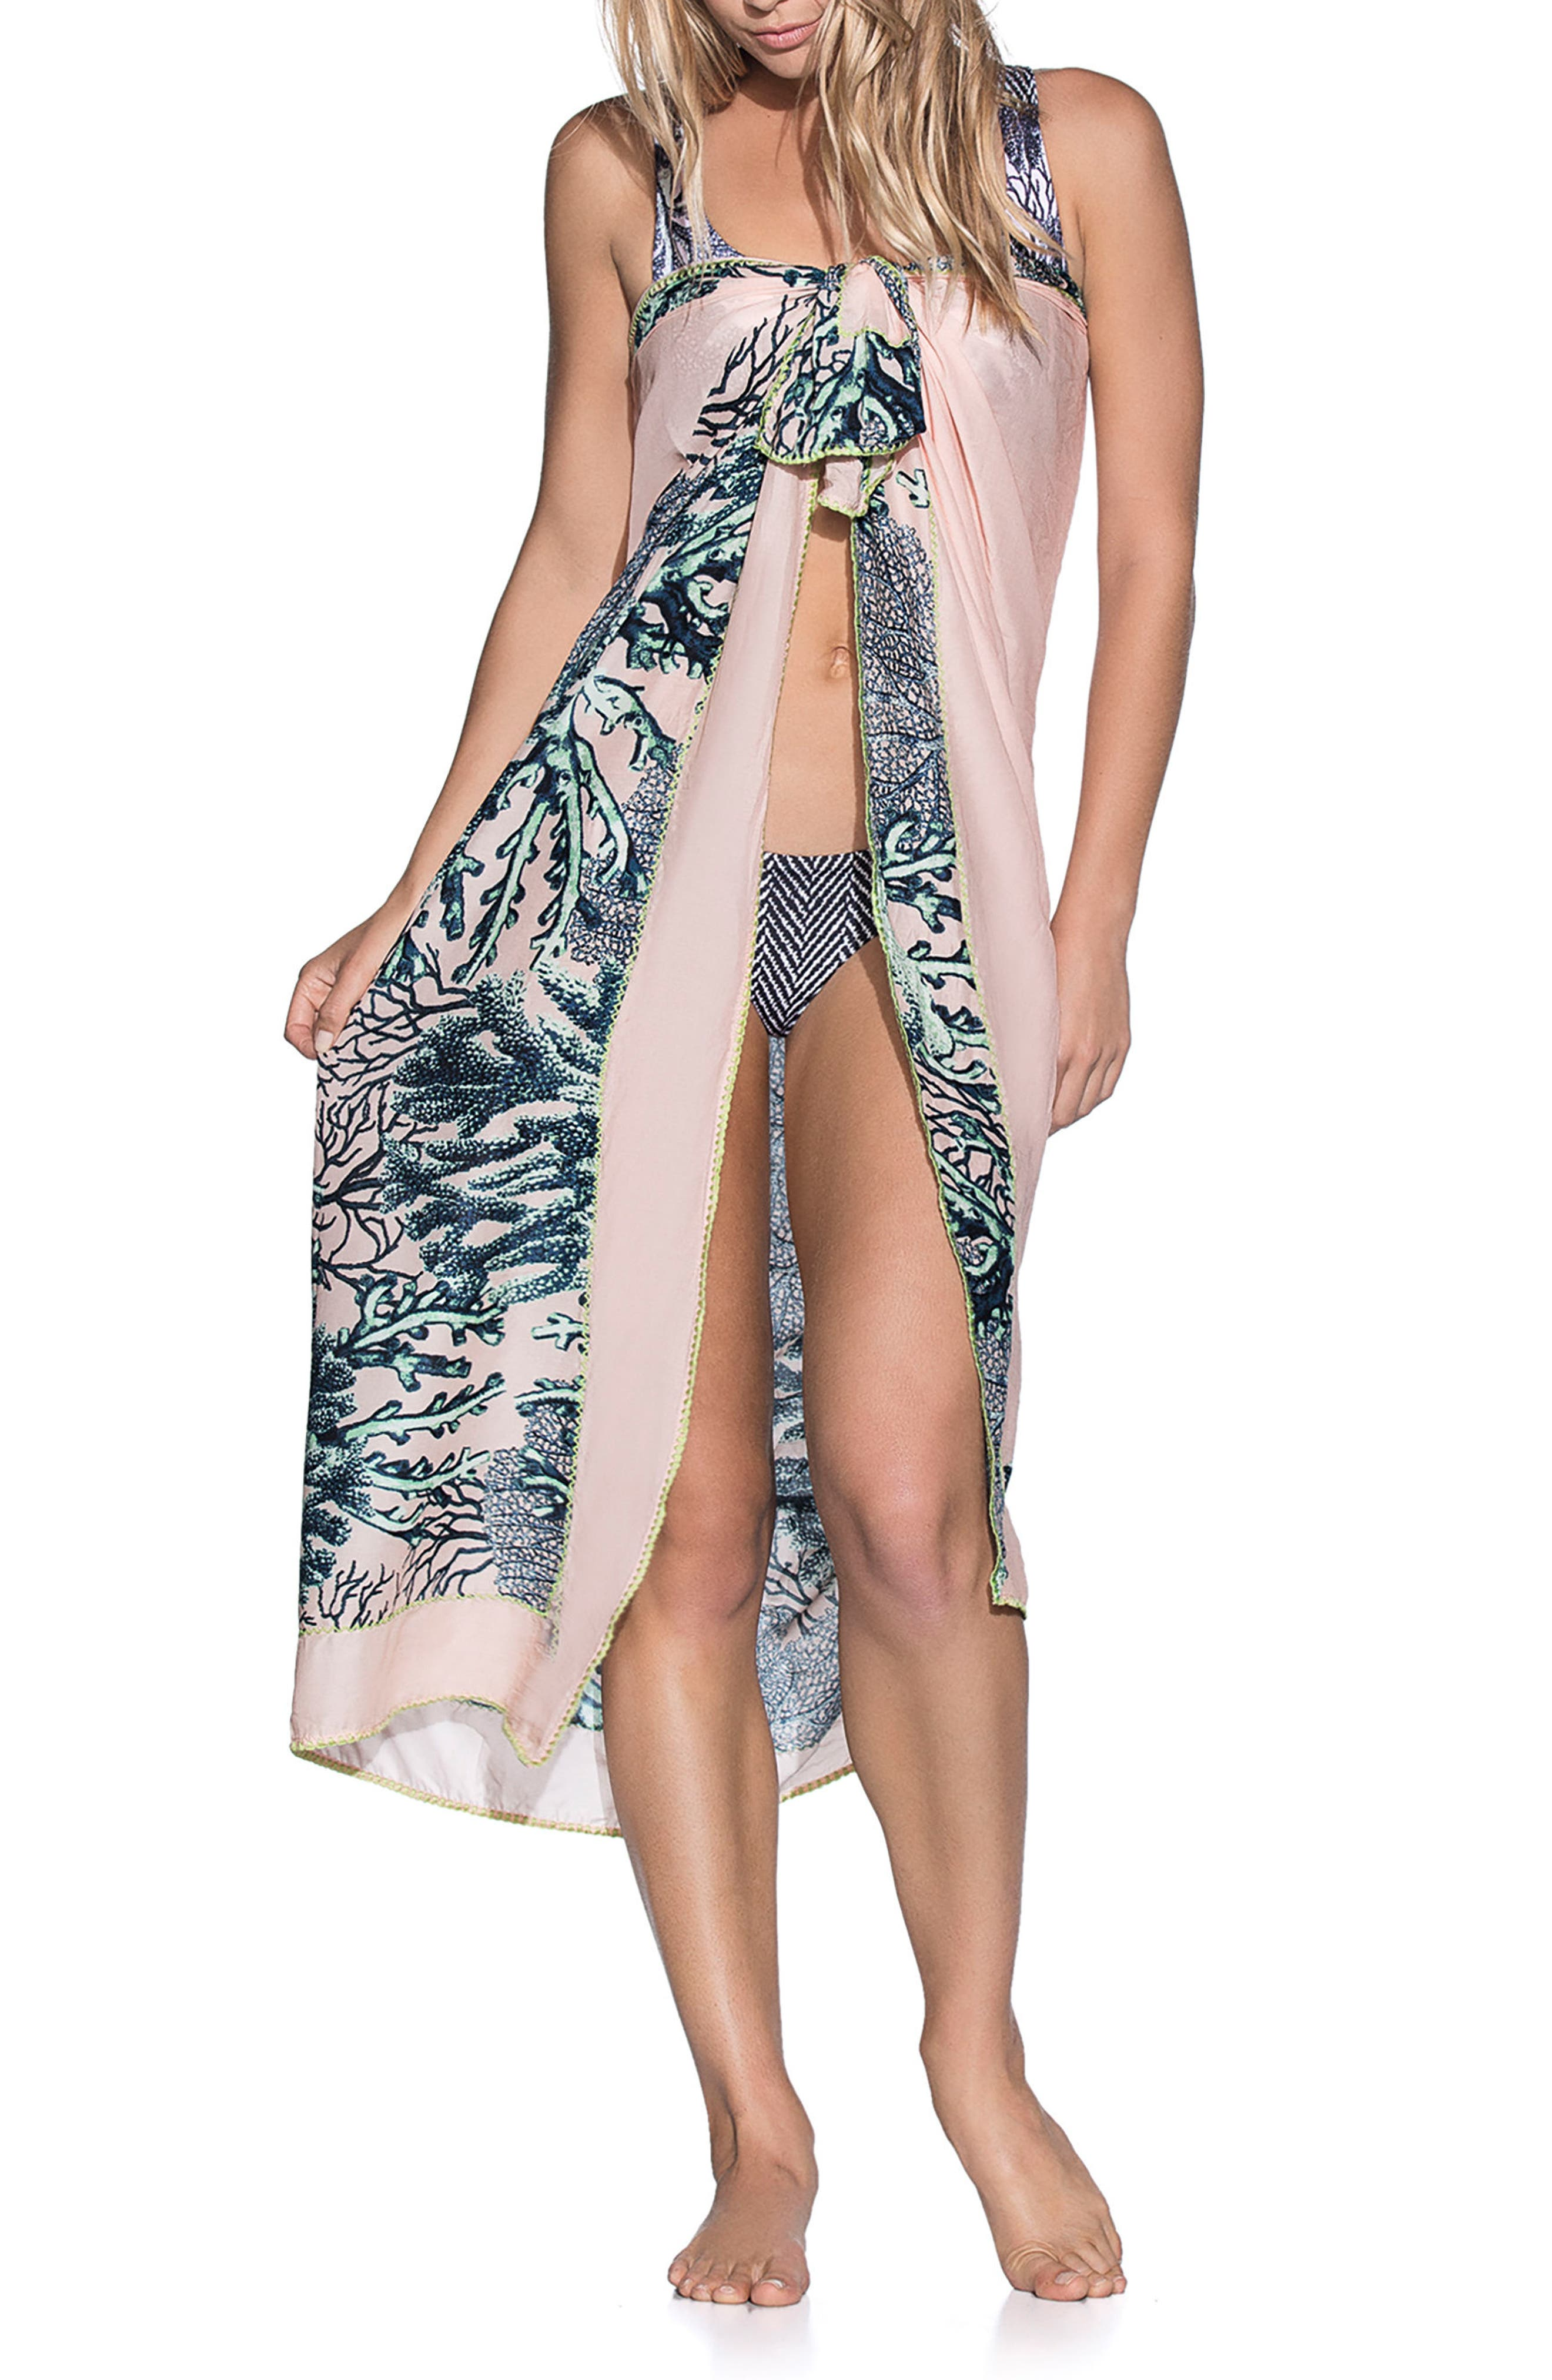 Bar Reef Pareo Cover-Up Wrap,                             Alternate thumbnail 3, color,                             Black Multi